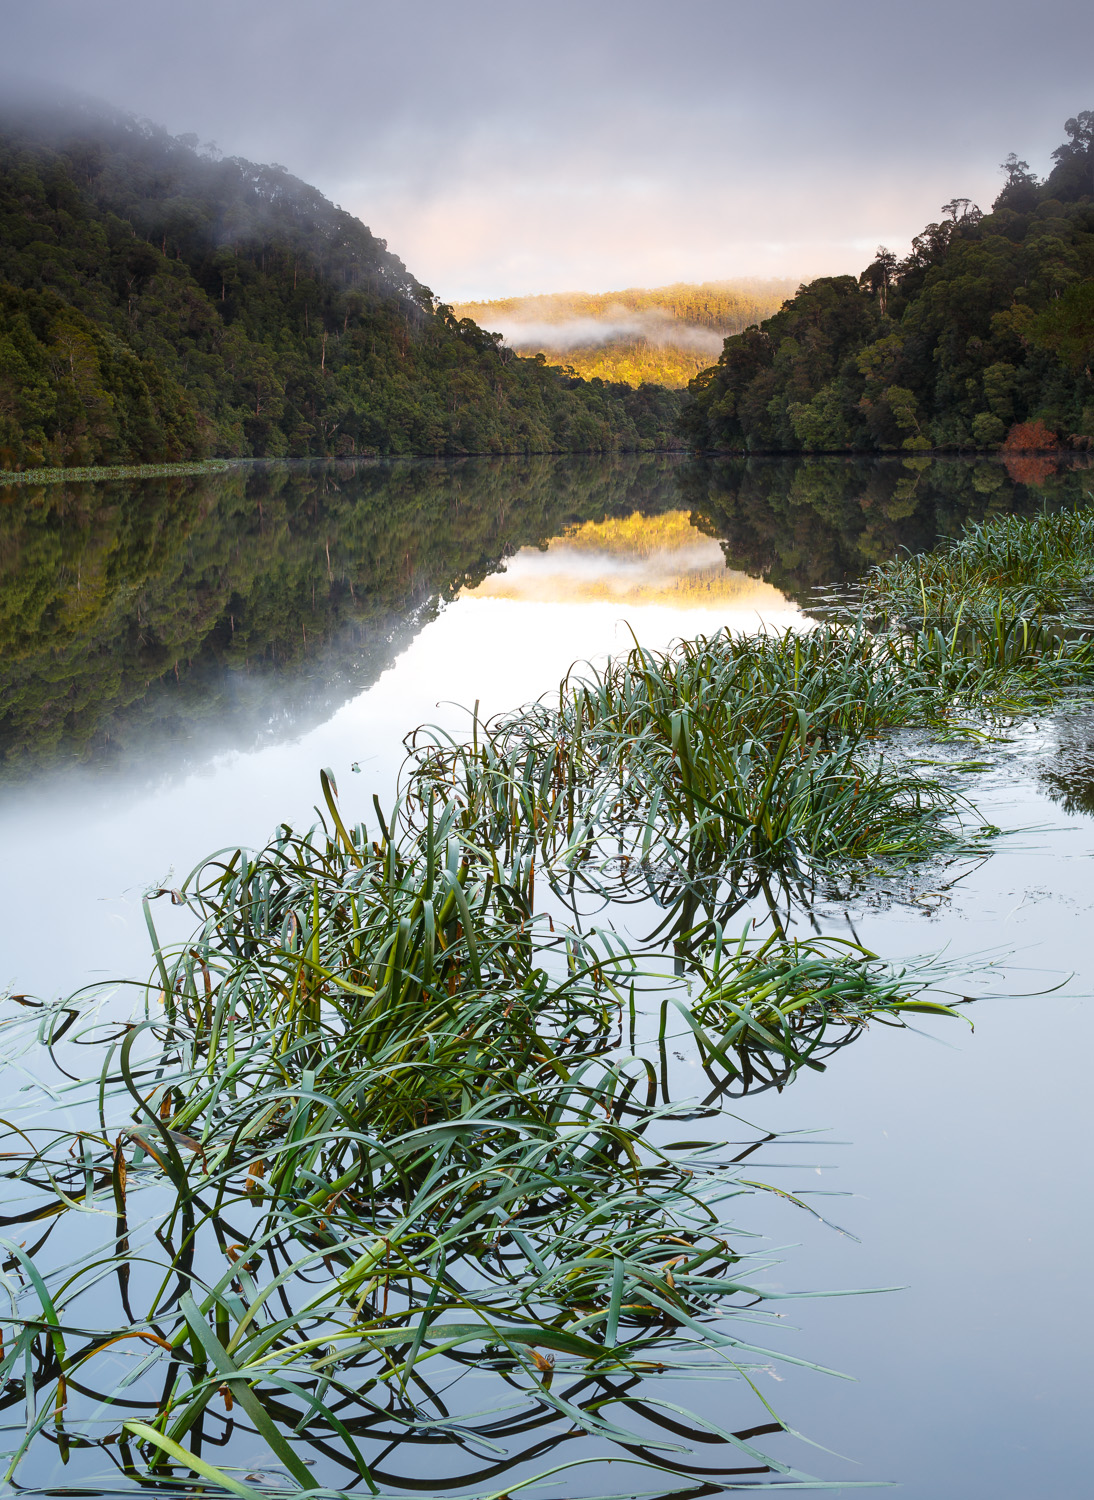 Sunrise along the Pieman River at Corinna